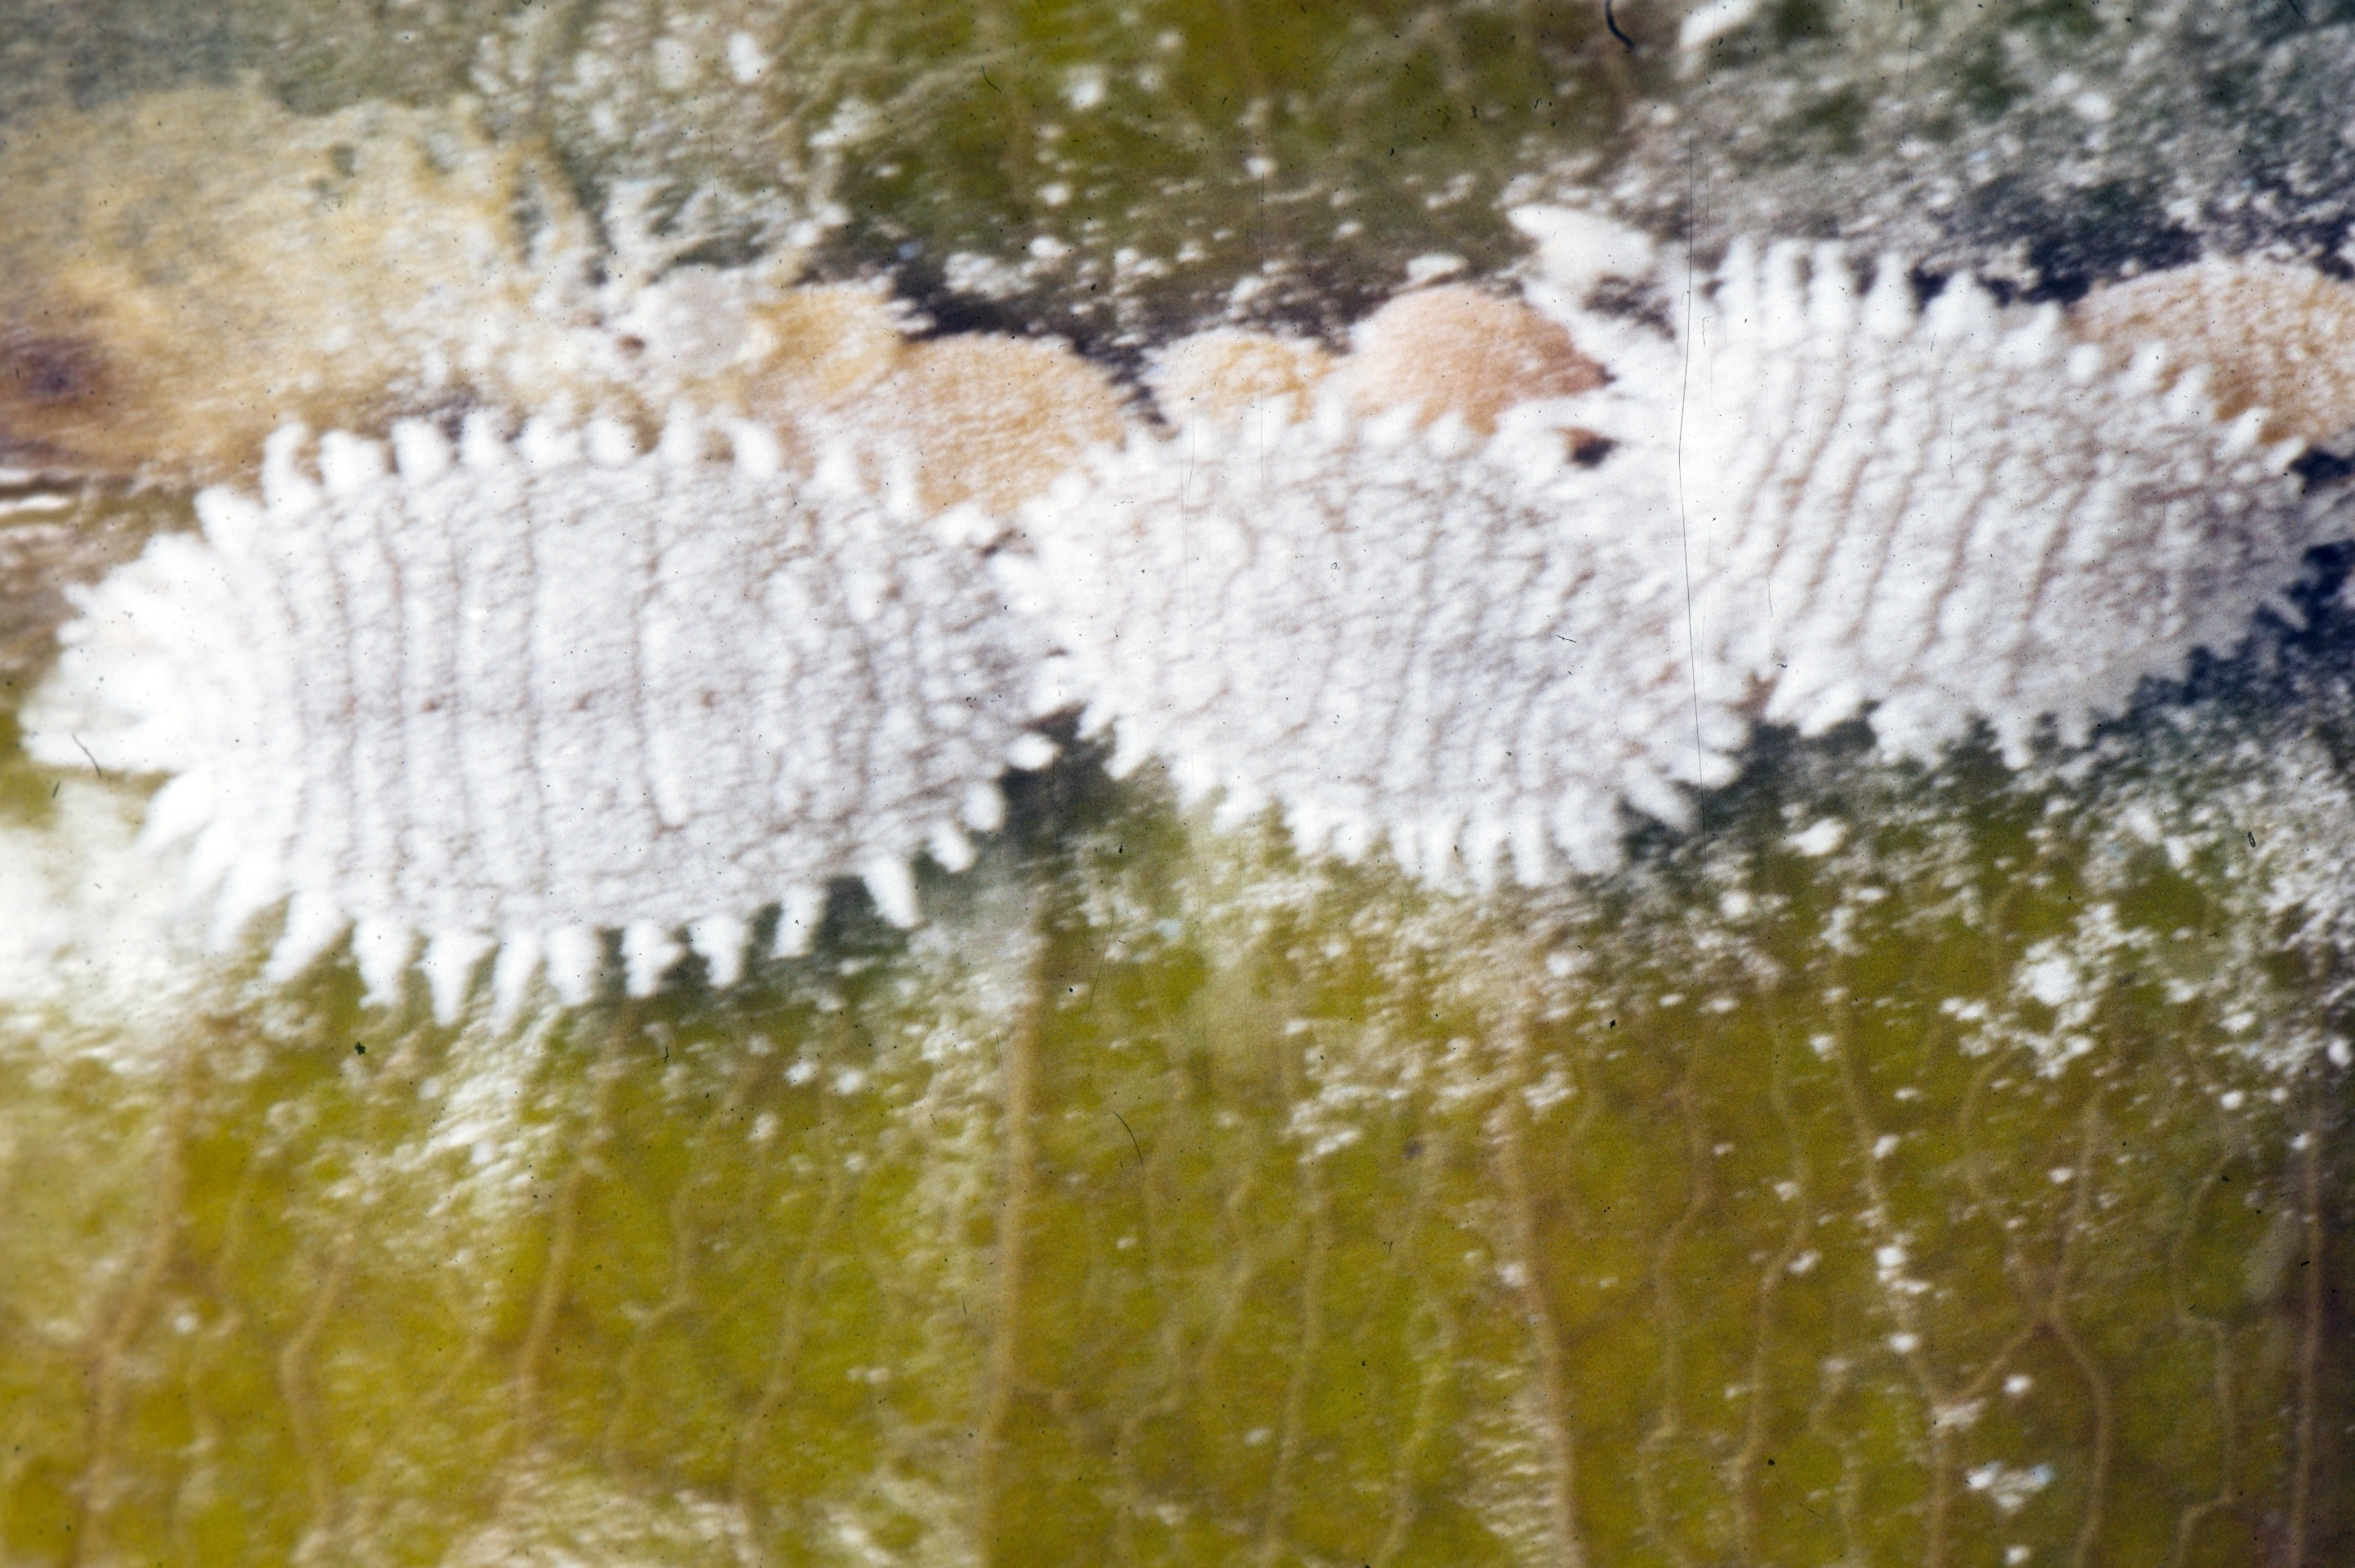 Image of Citrus mealybug